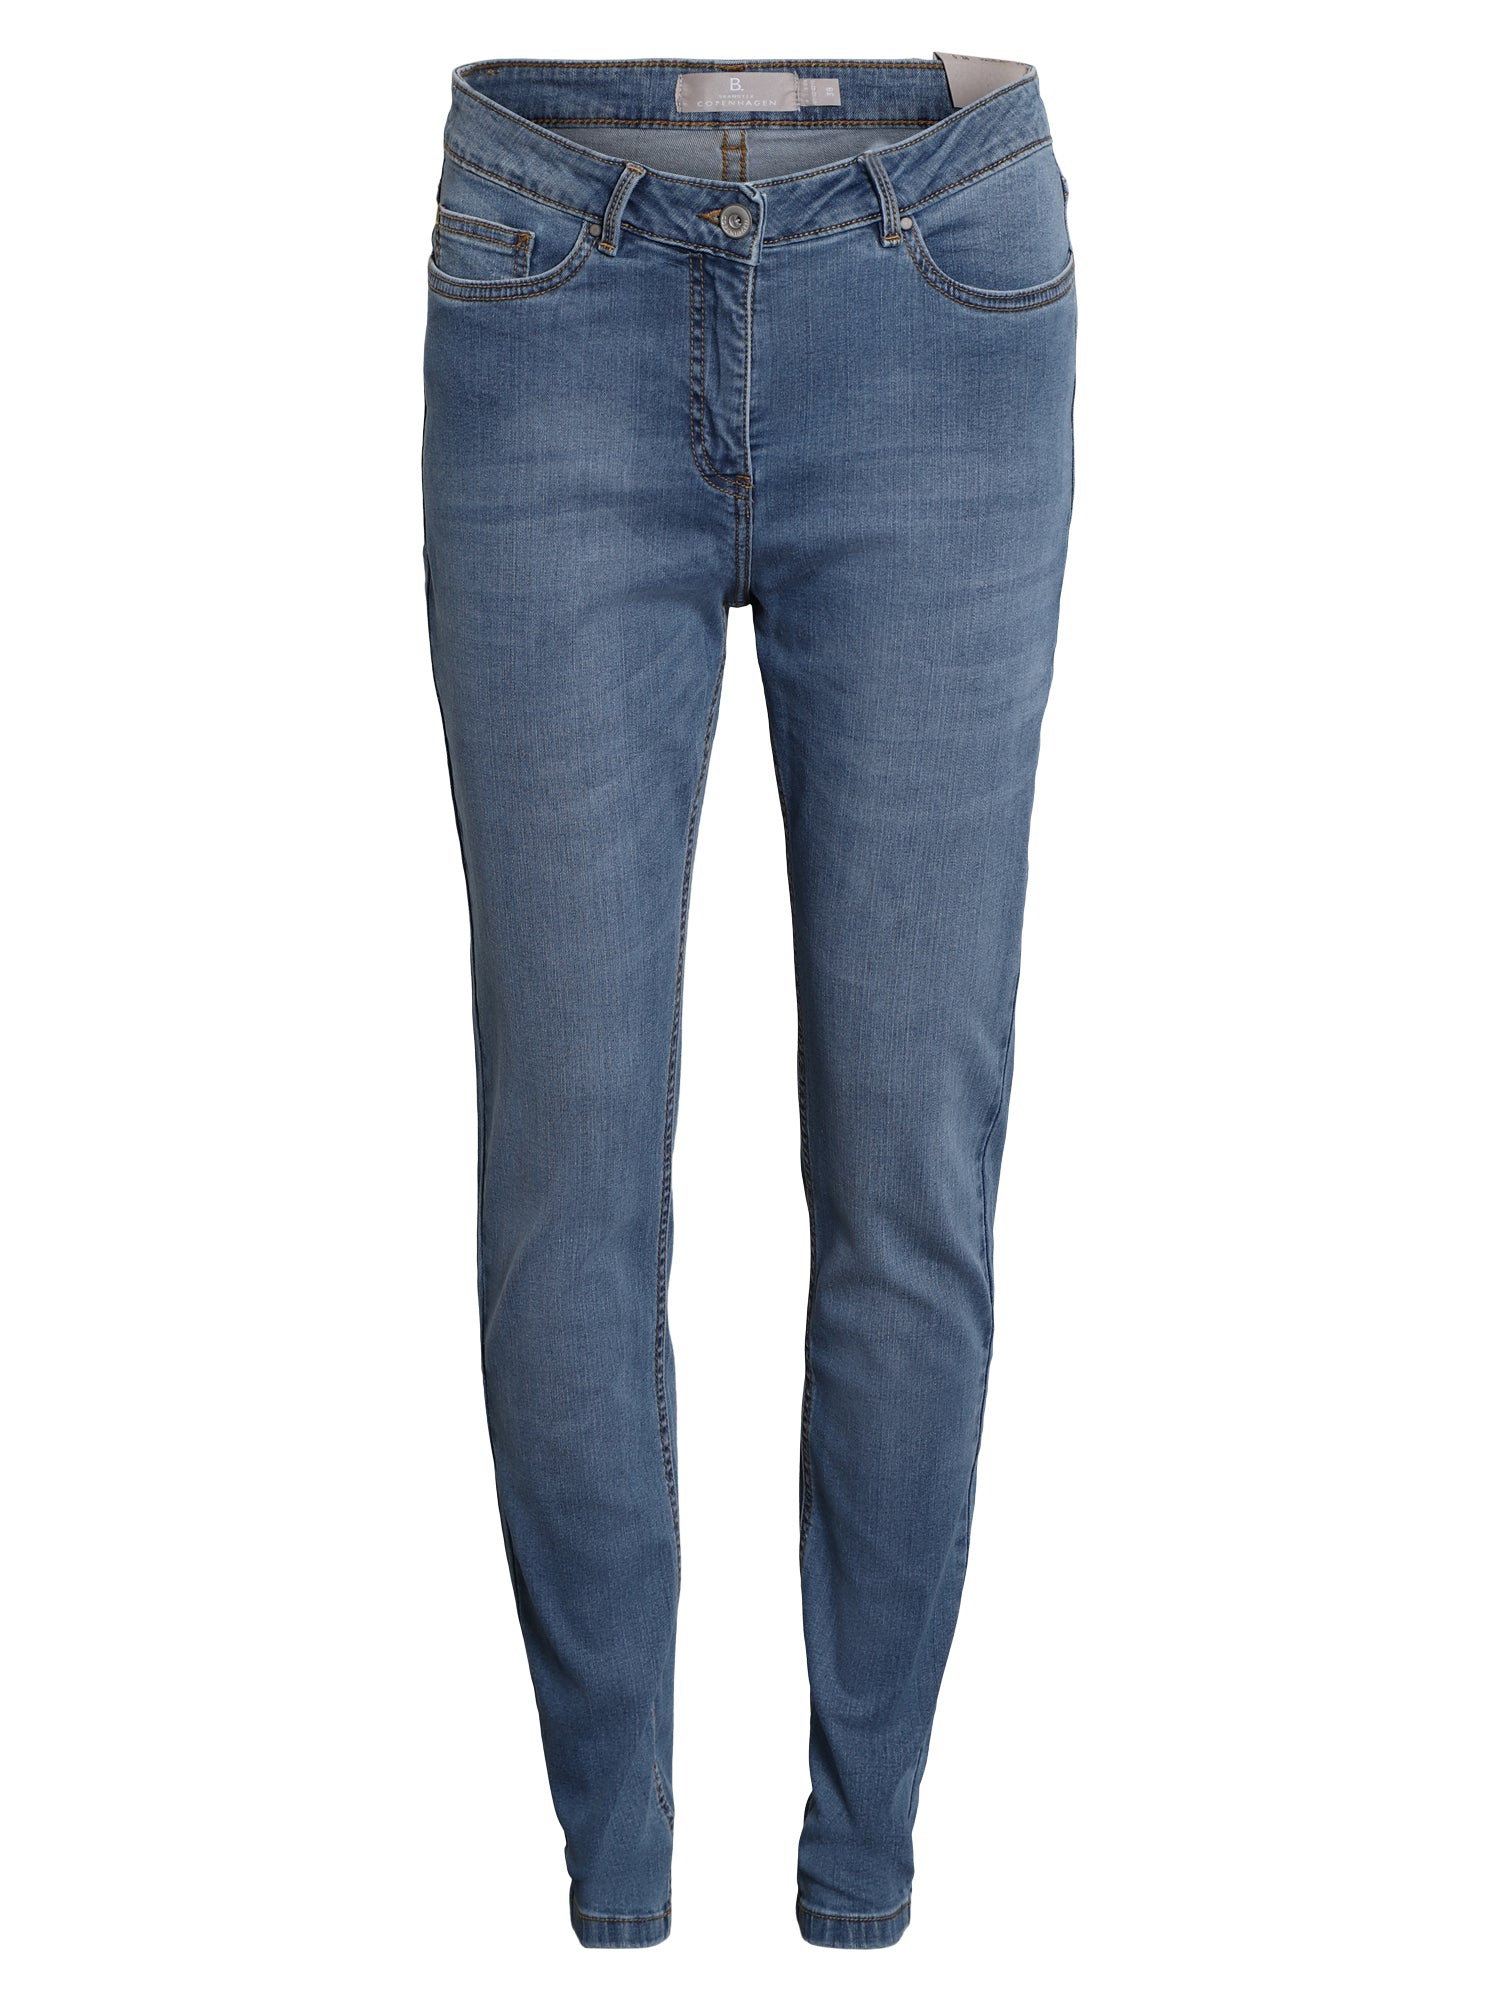 Image of   Jeans Madelaine - Blue sky denim